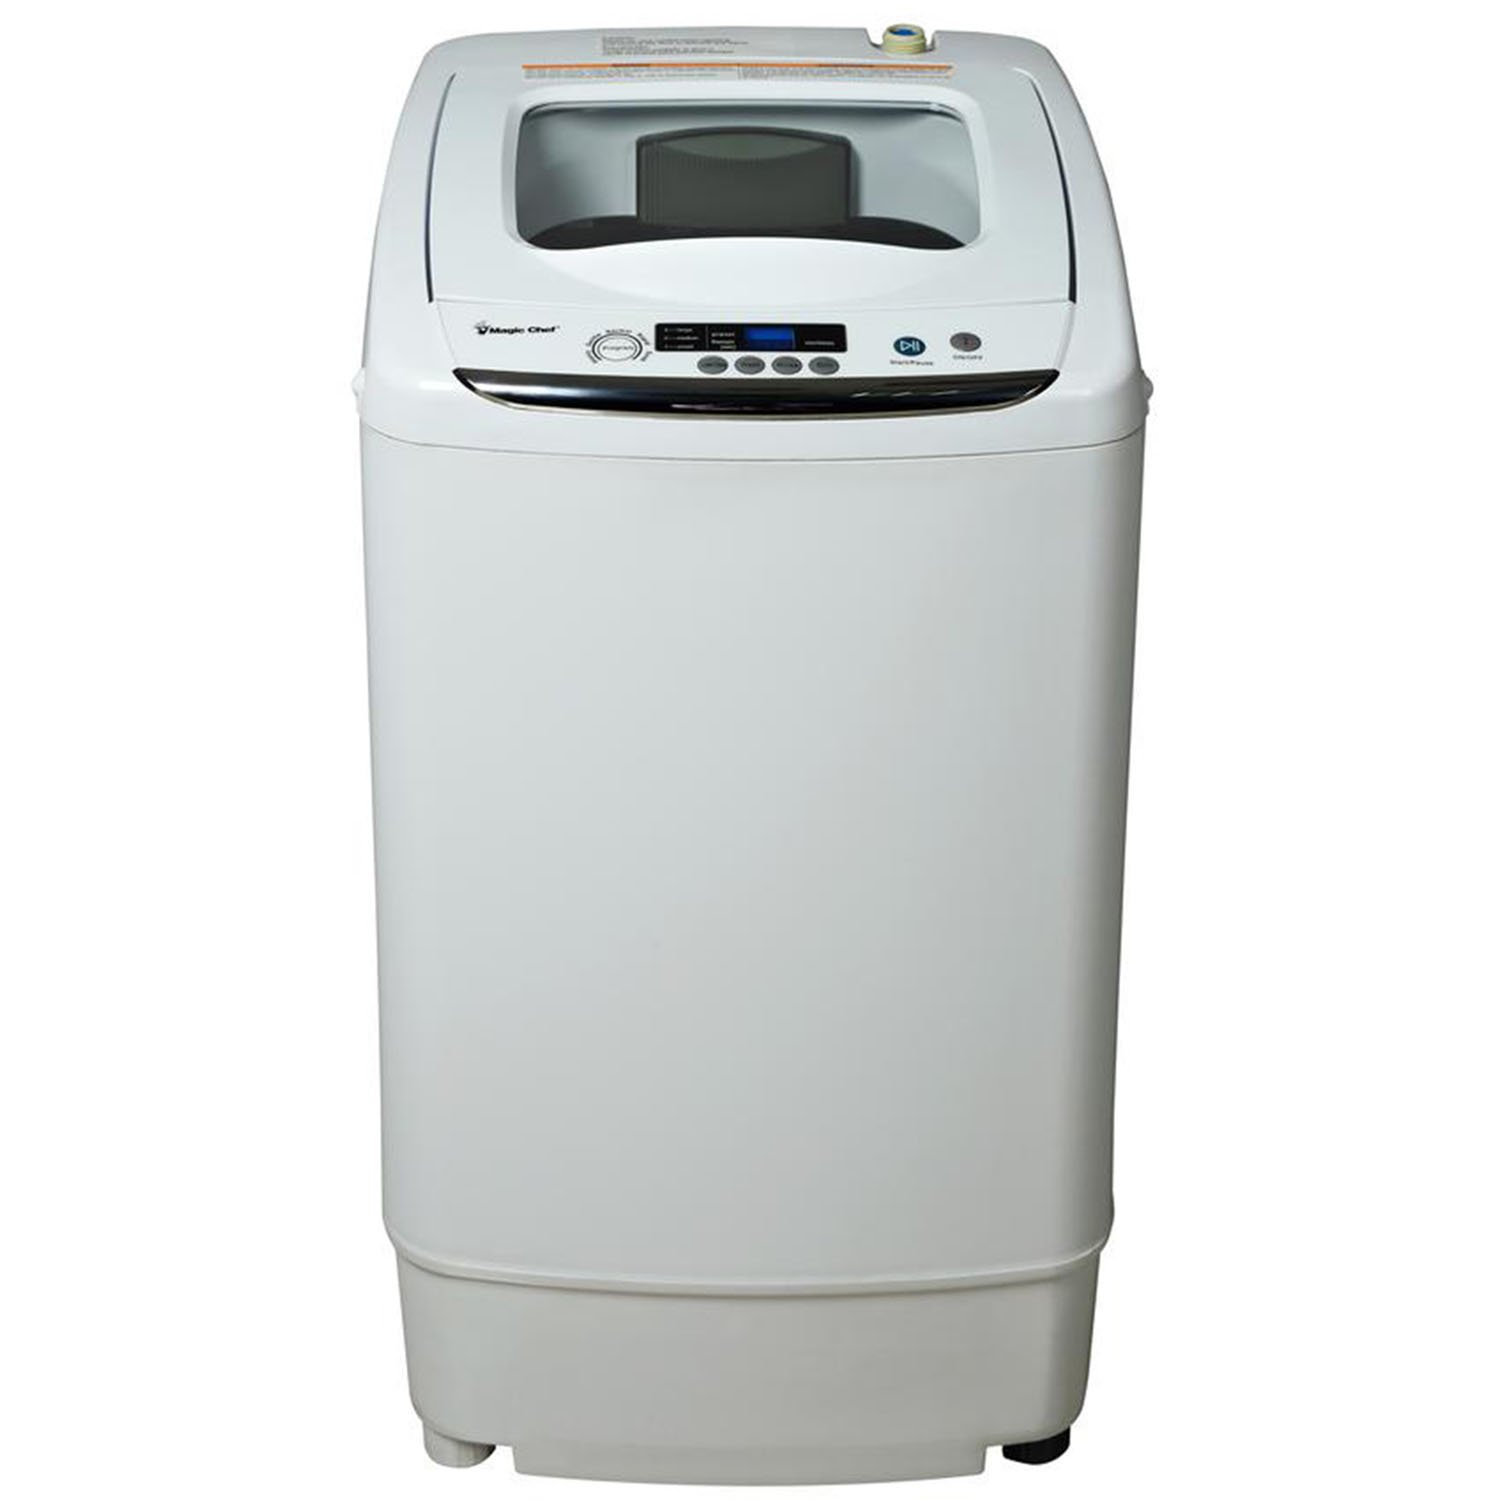 Magic Chef MCSTCW09W1 Compact Washer, 0.9 cu. ft. , White